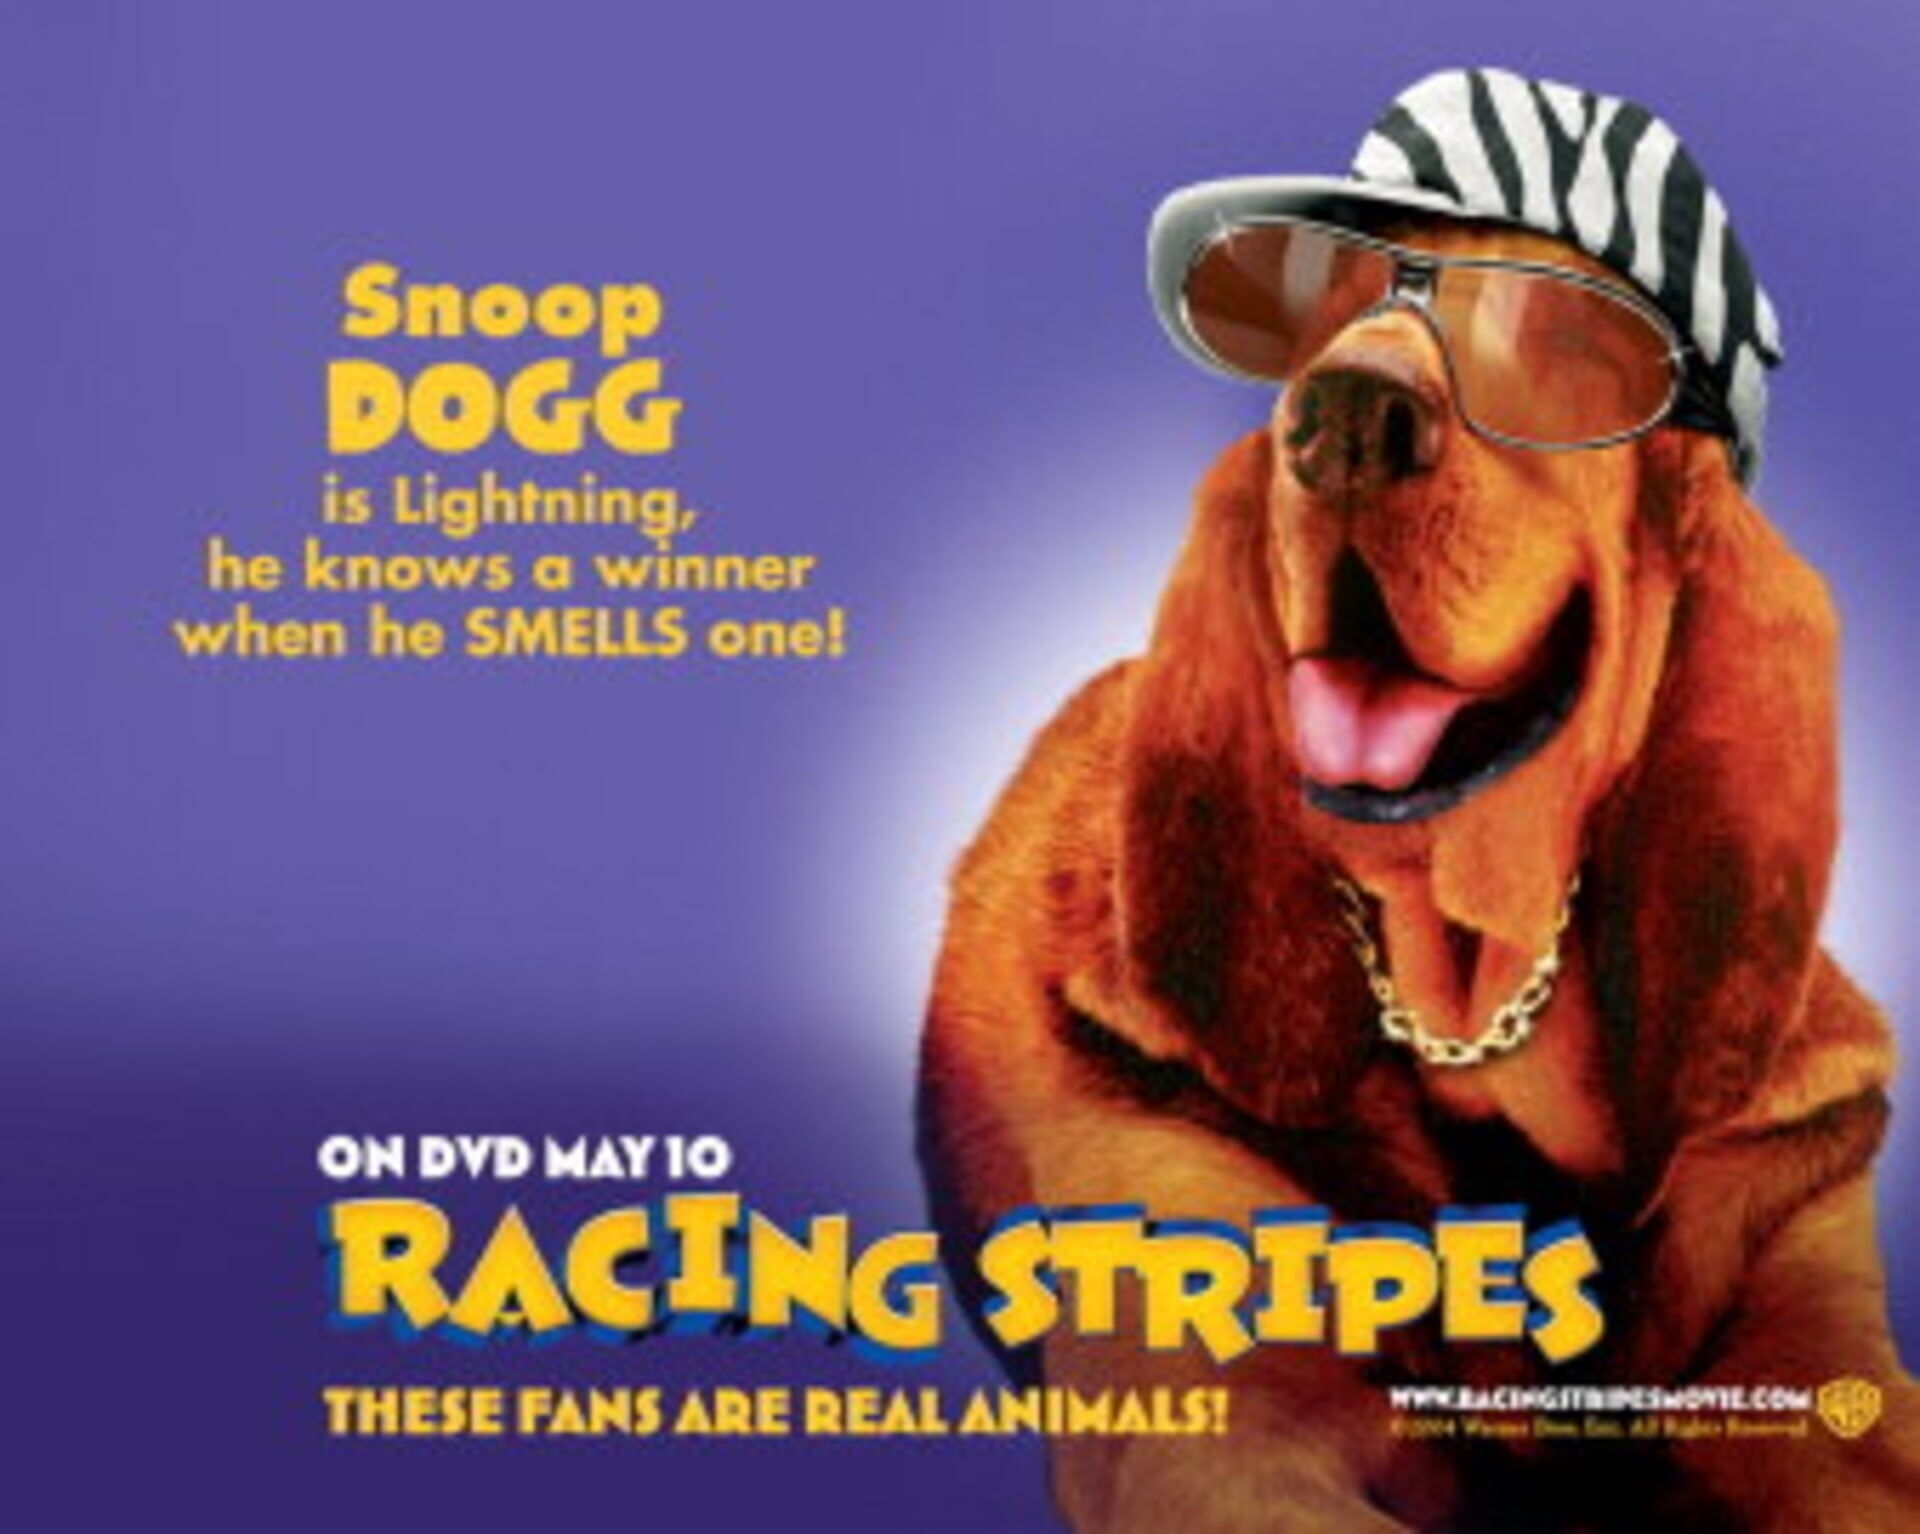 Racing Stripes - Image 18